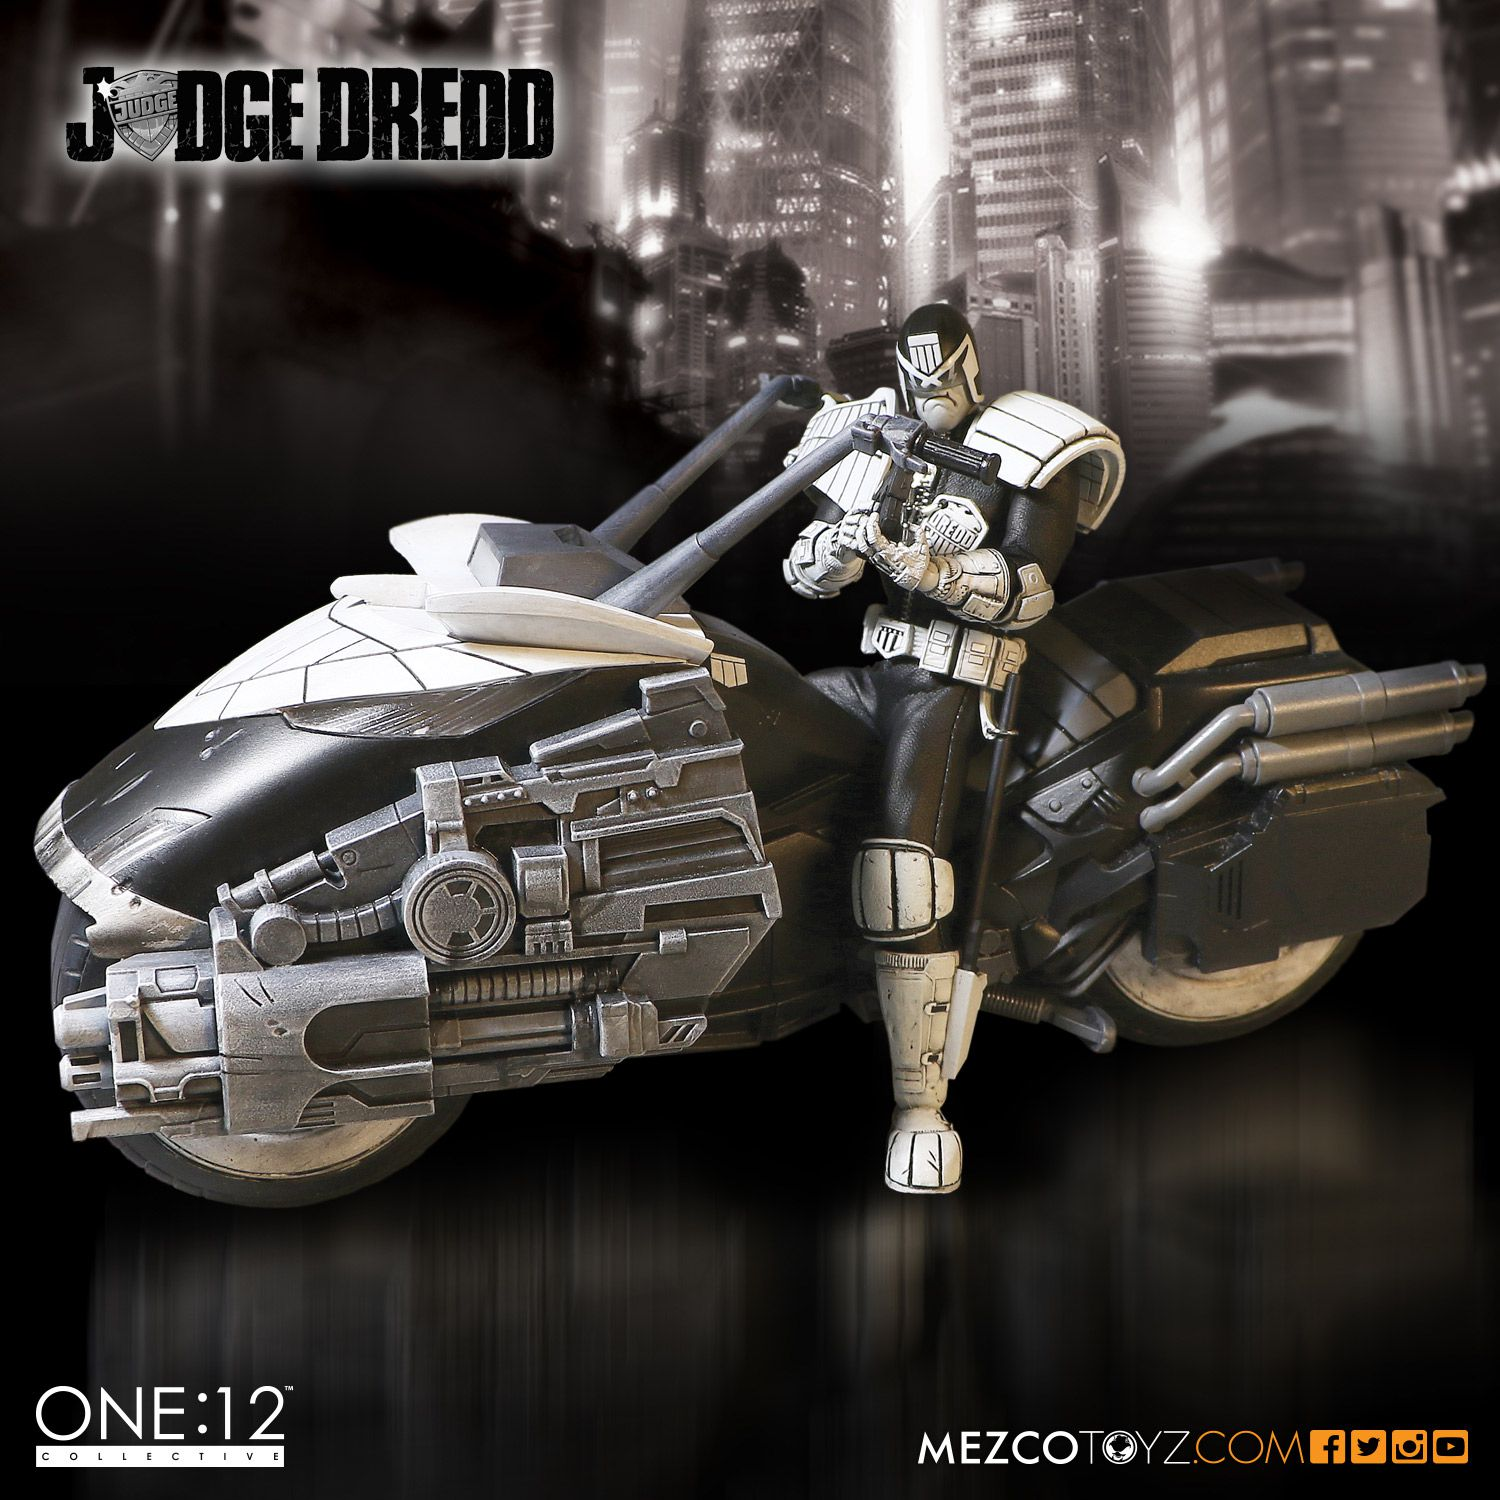 SDCC One12 BW Judge Dredd Set 001